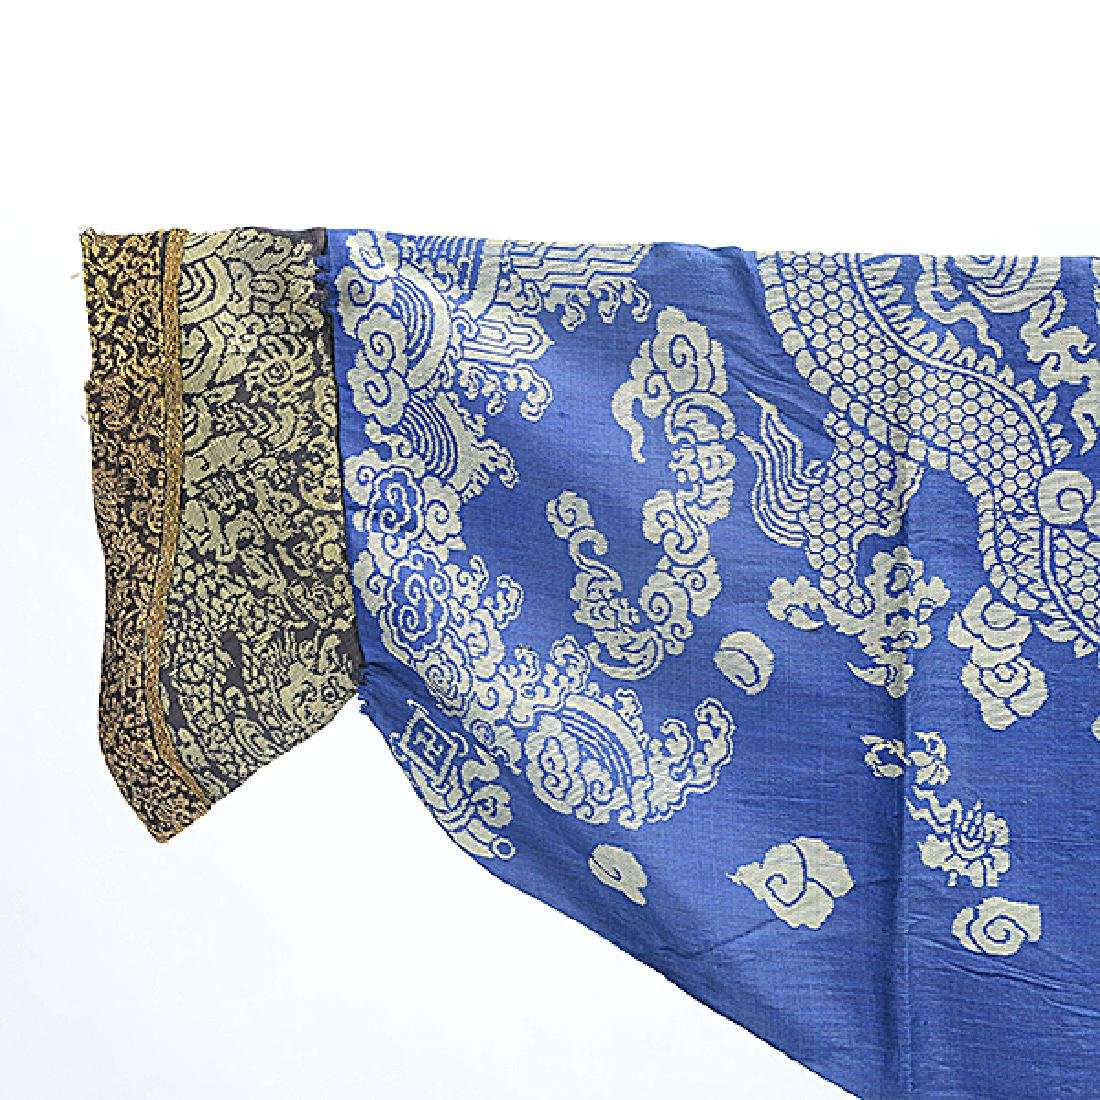 A Brocade Woven Blue Ground 'Dragon' Robe, Late 19th - 4